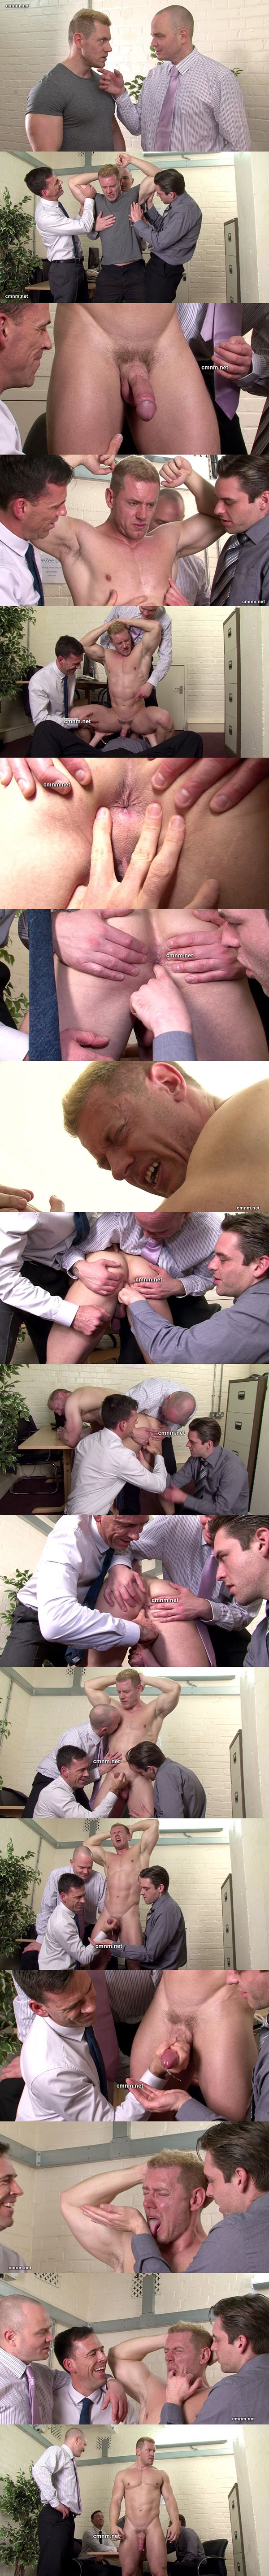 Masculine bodybuilder Enrico gets foot worshiped, ass fingered and Jerked off by three loan sharks at Cmnm 02